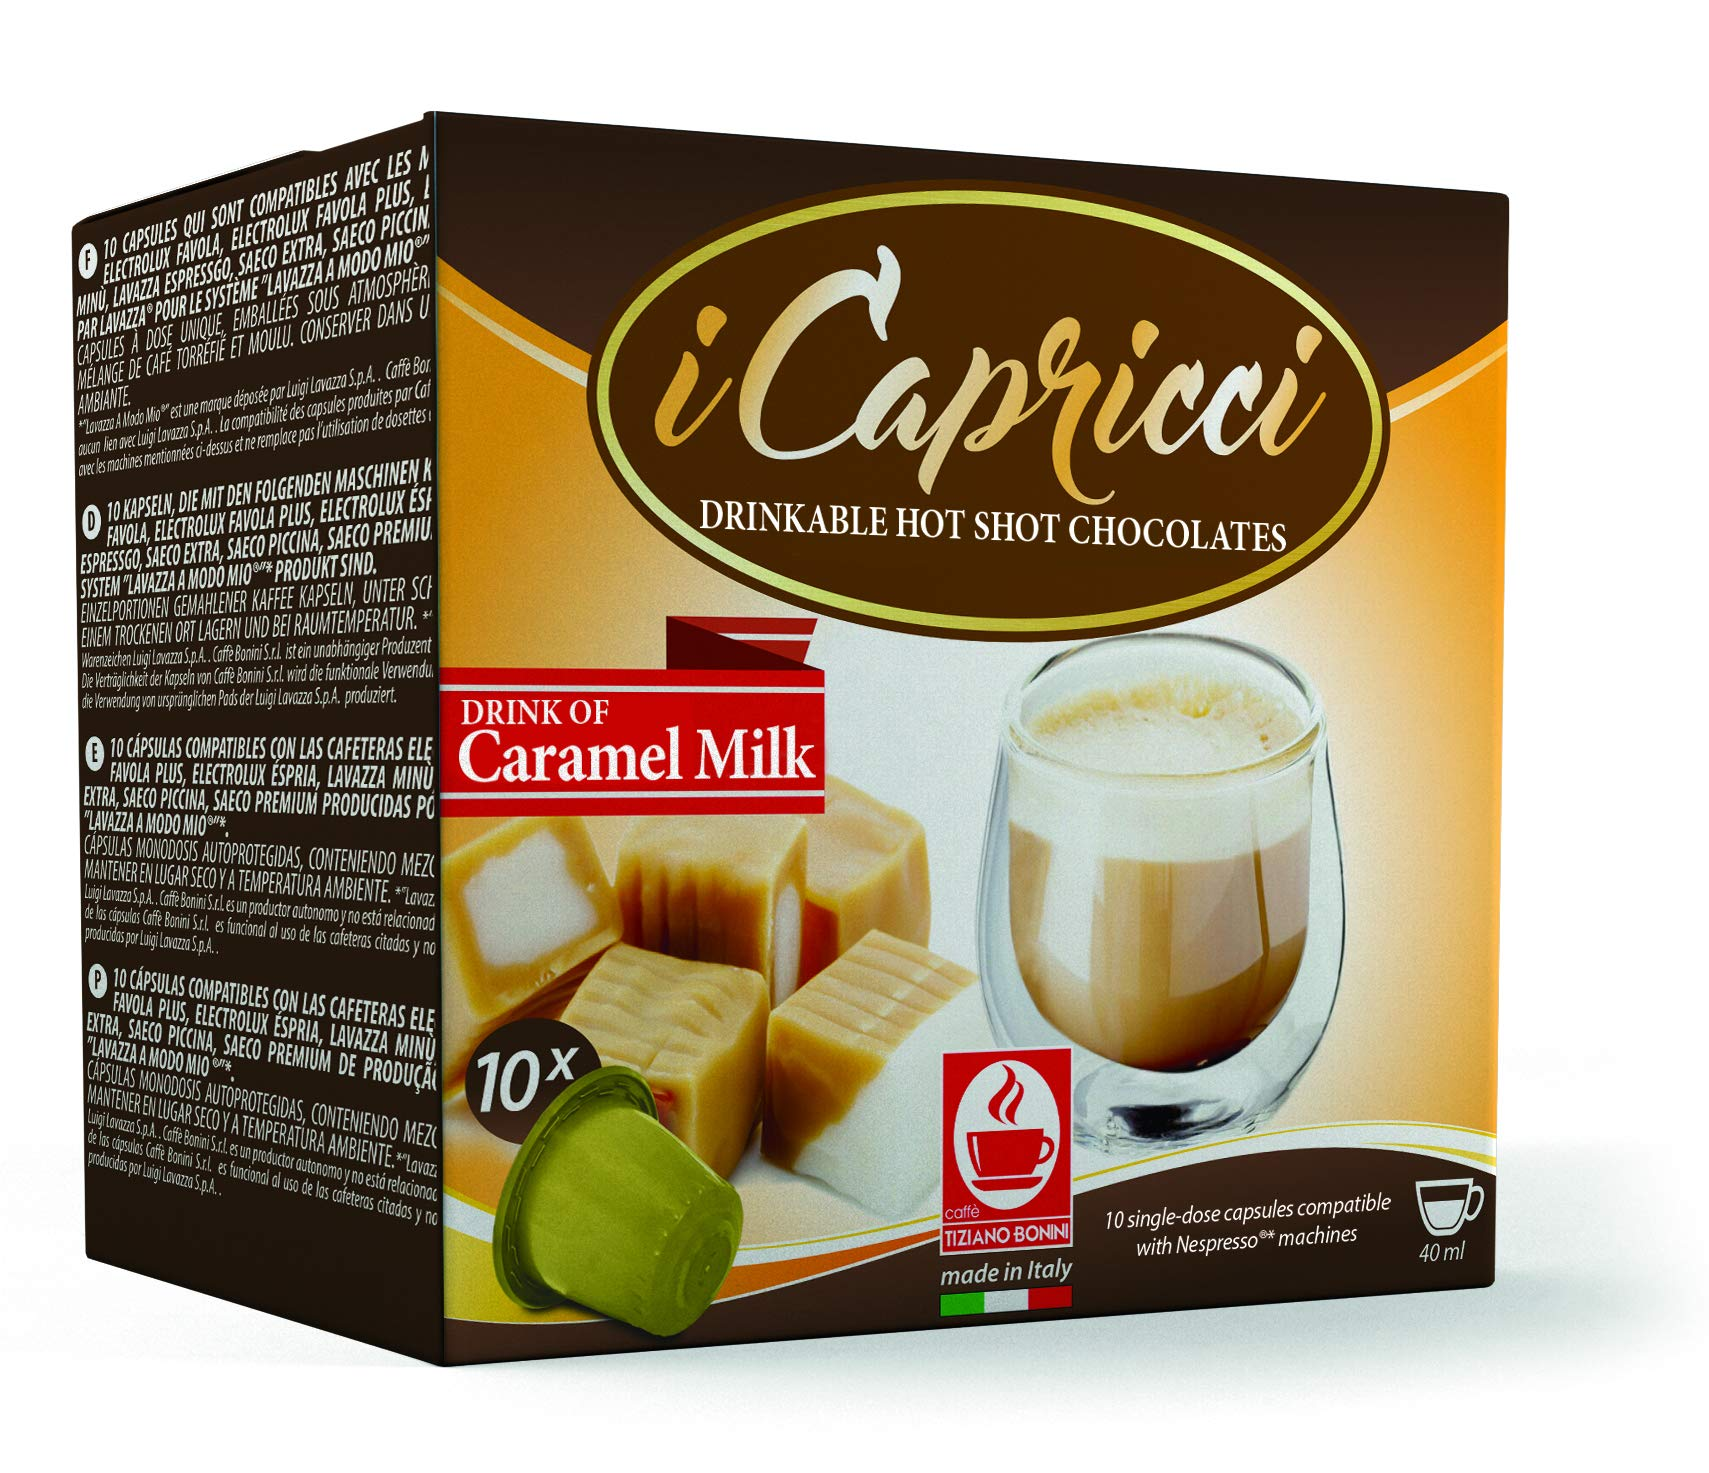 Gourmet Italian Hot Chocolate Capsules compatible with all Original Line Nespresso Machines, from Caffe Bonini